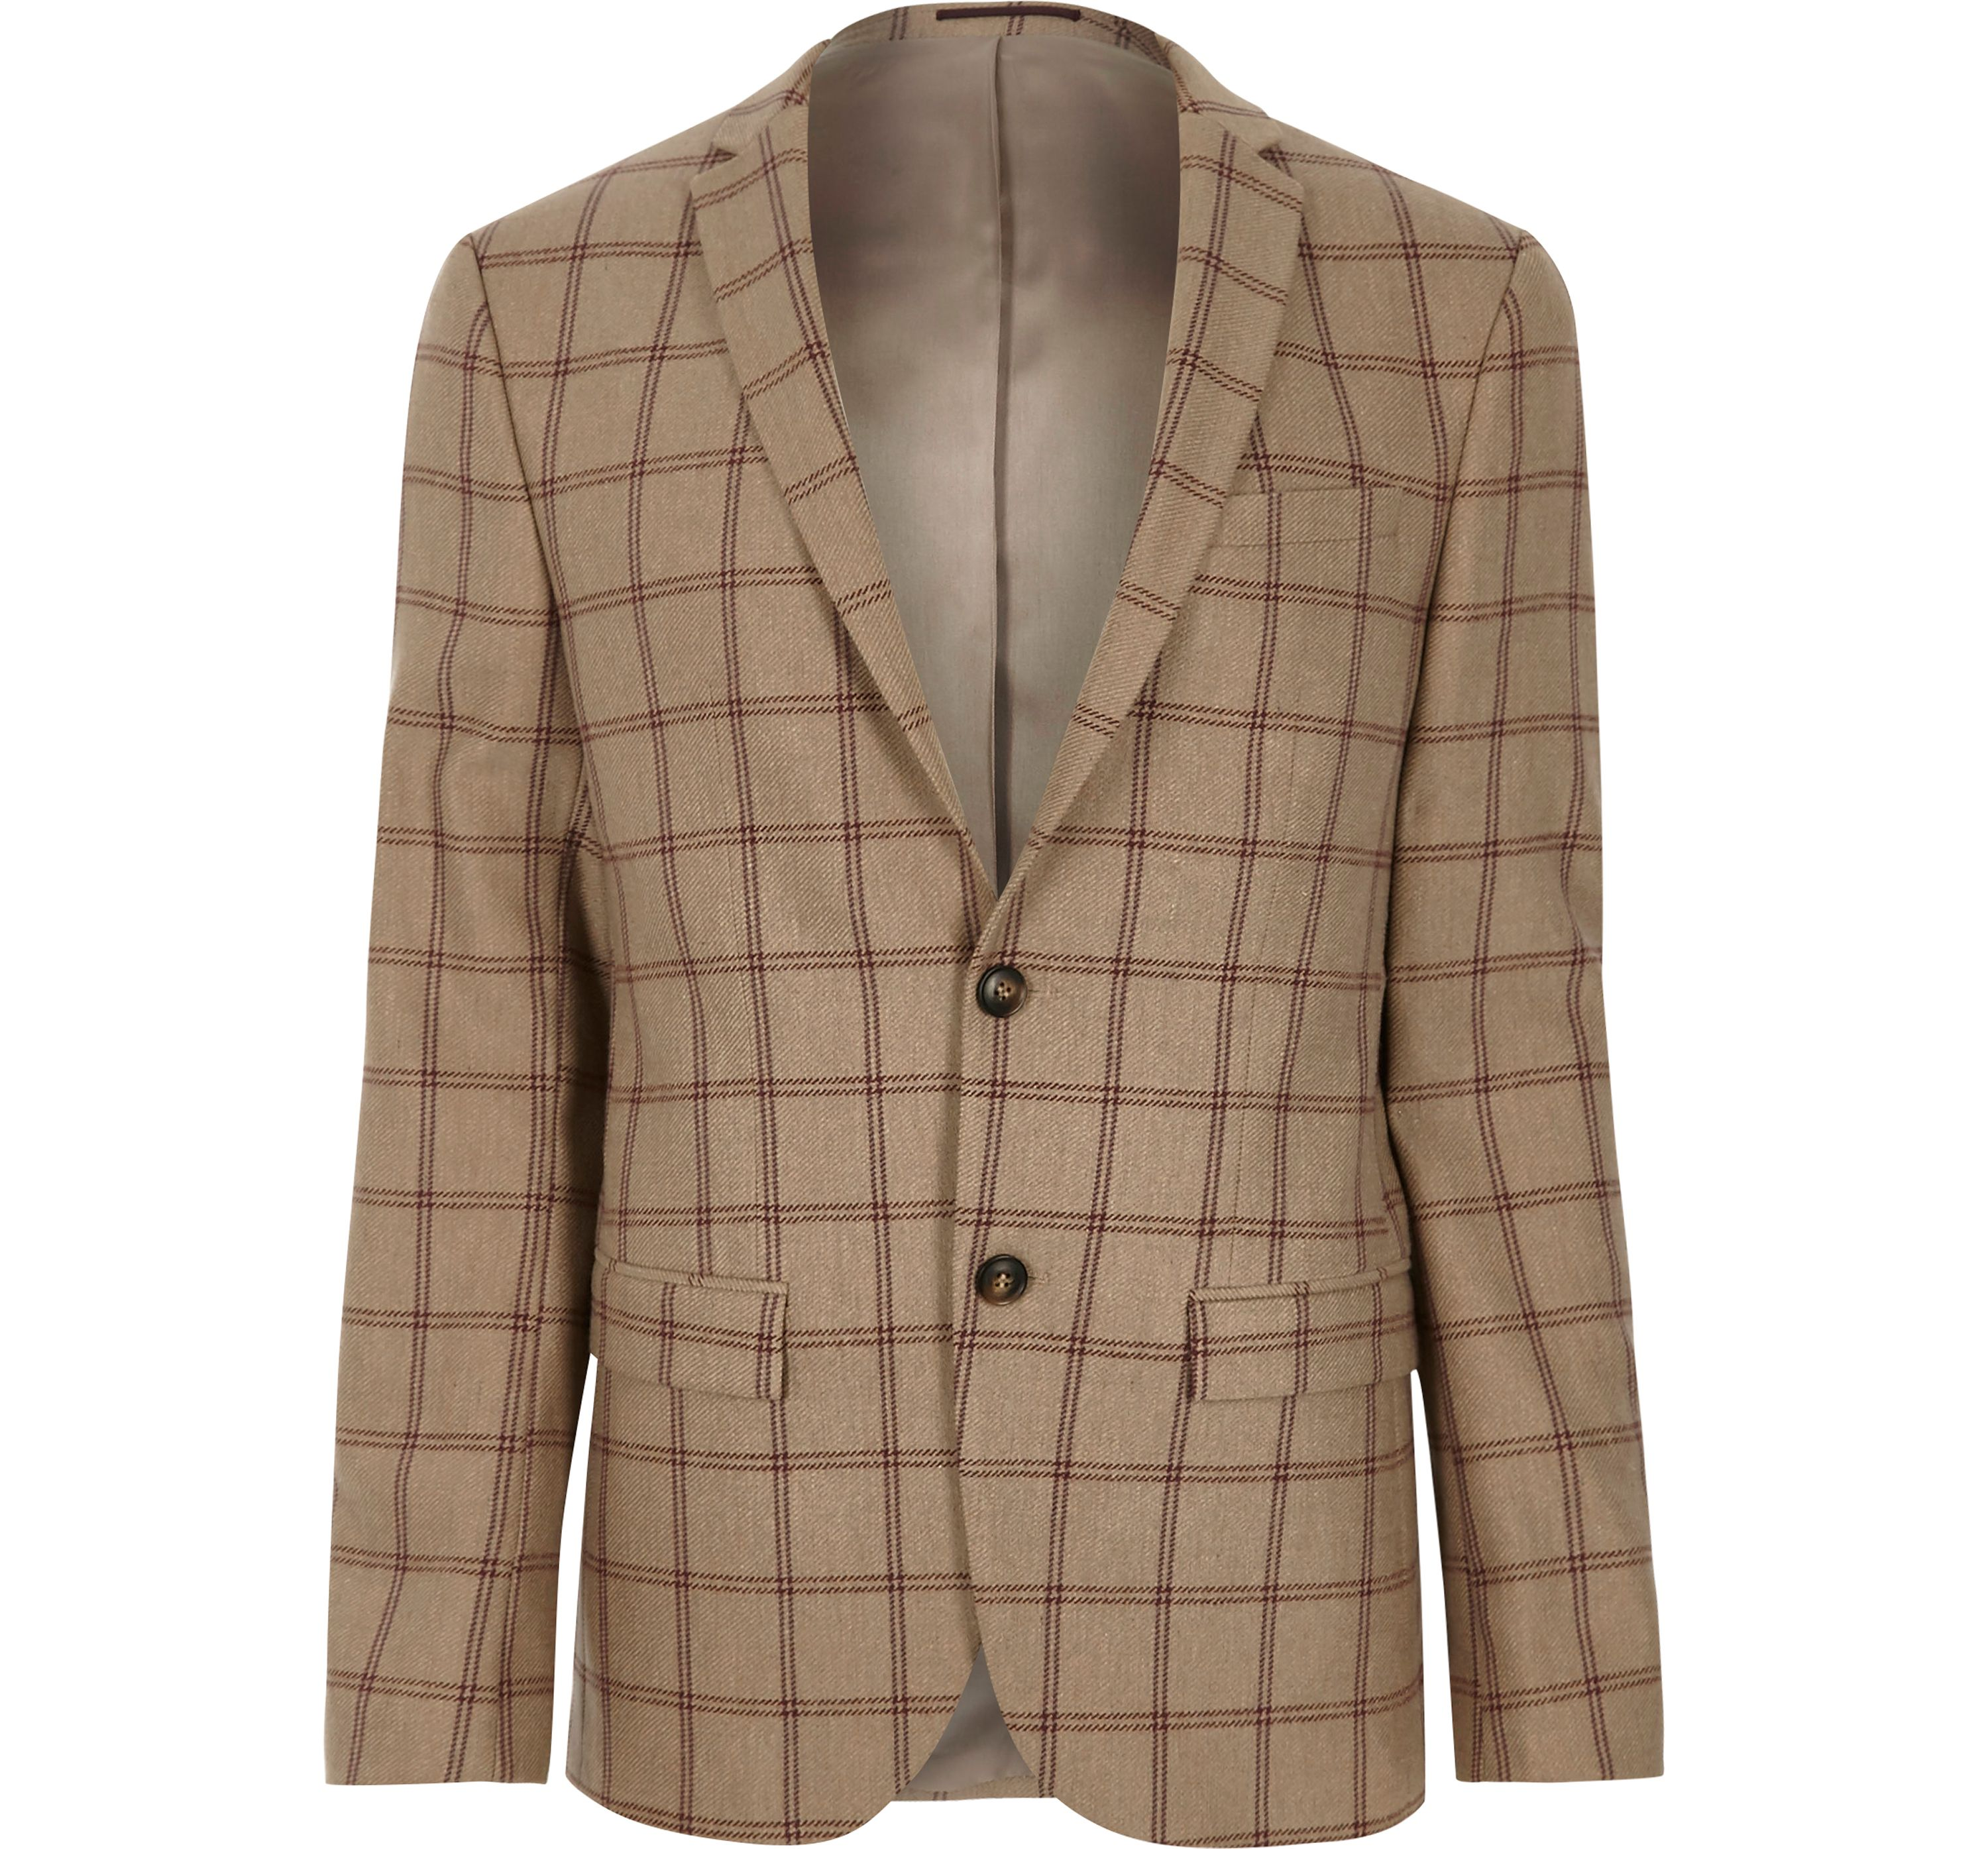 River Island Mens Beige check skinny fit suit jacket